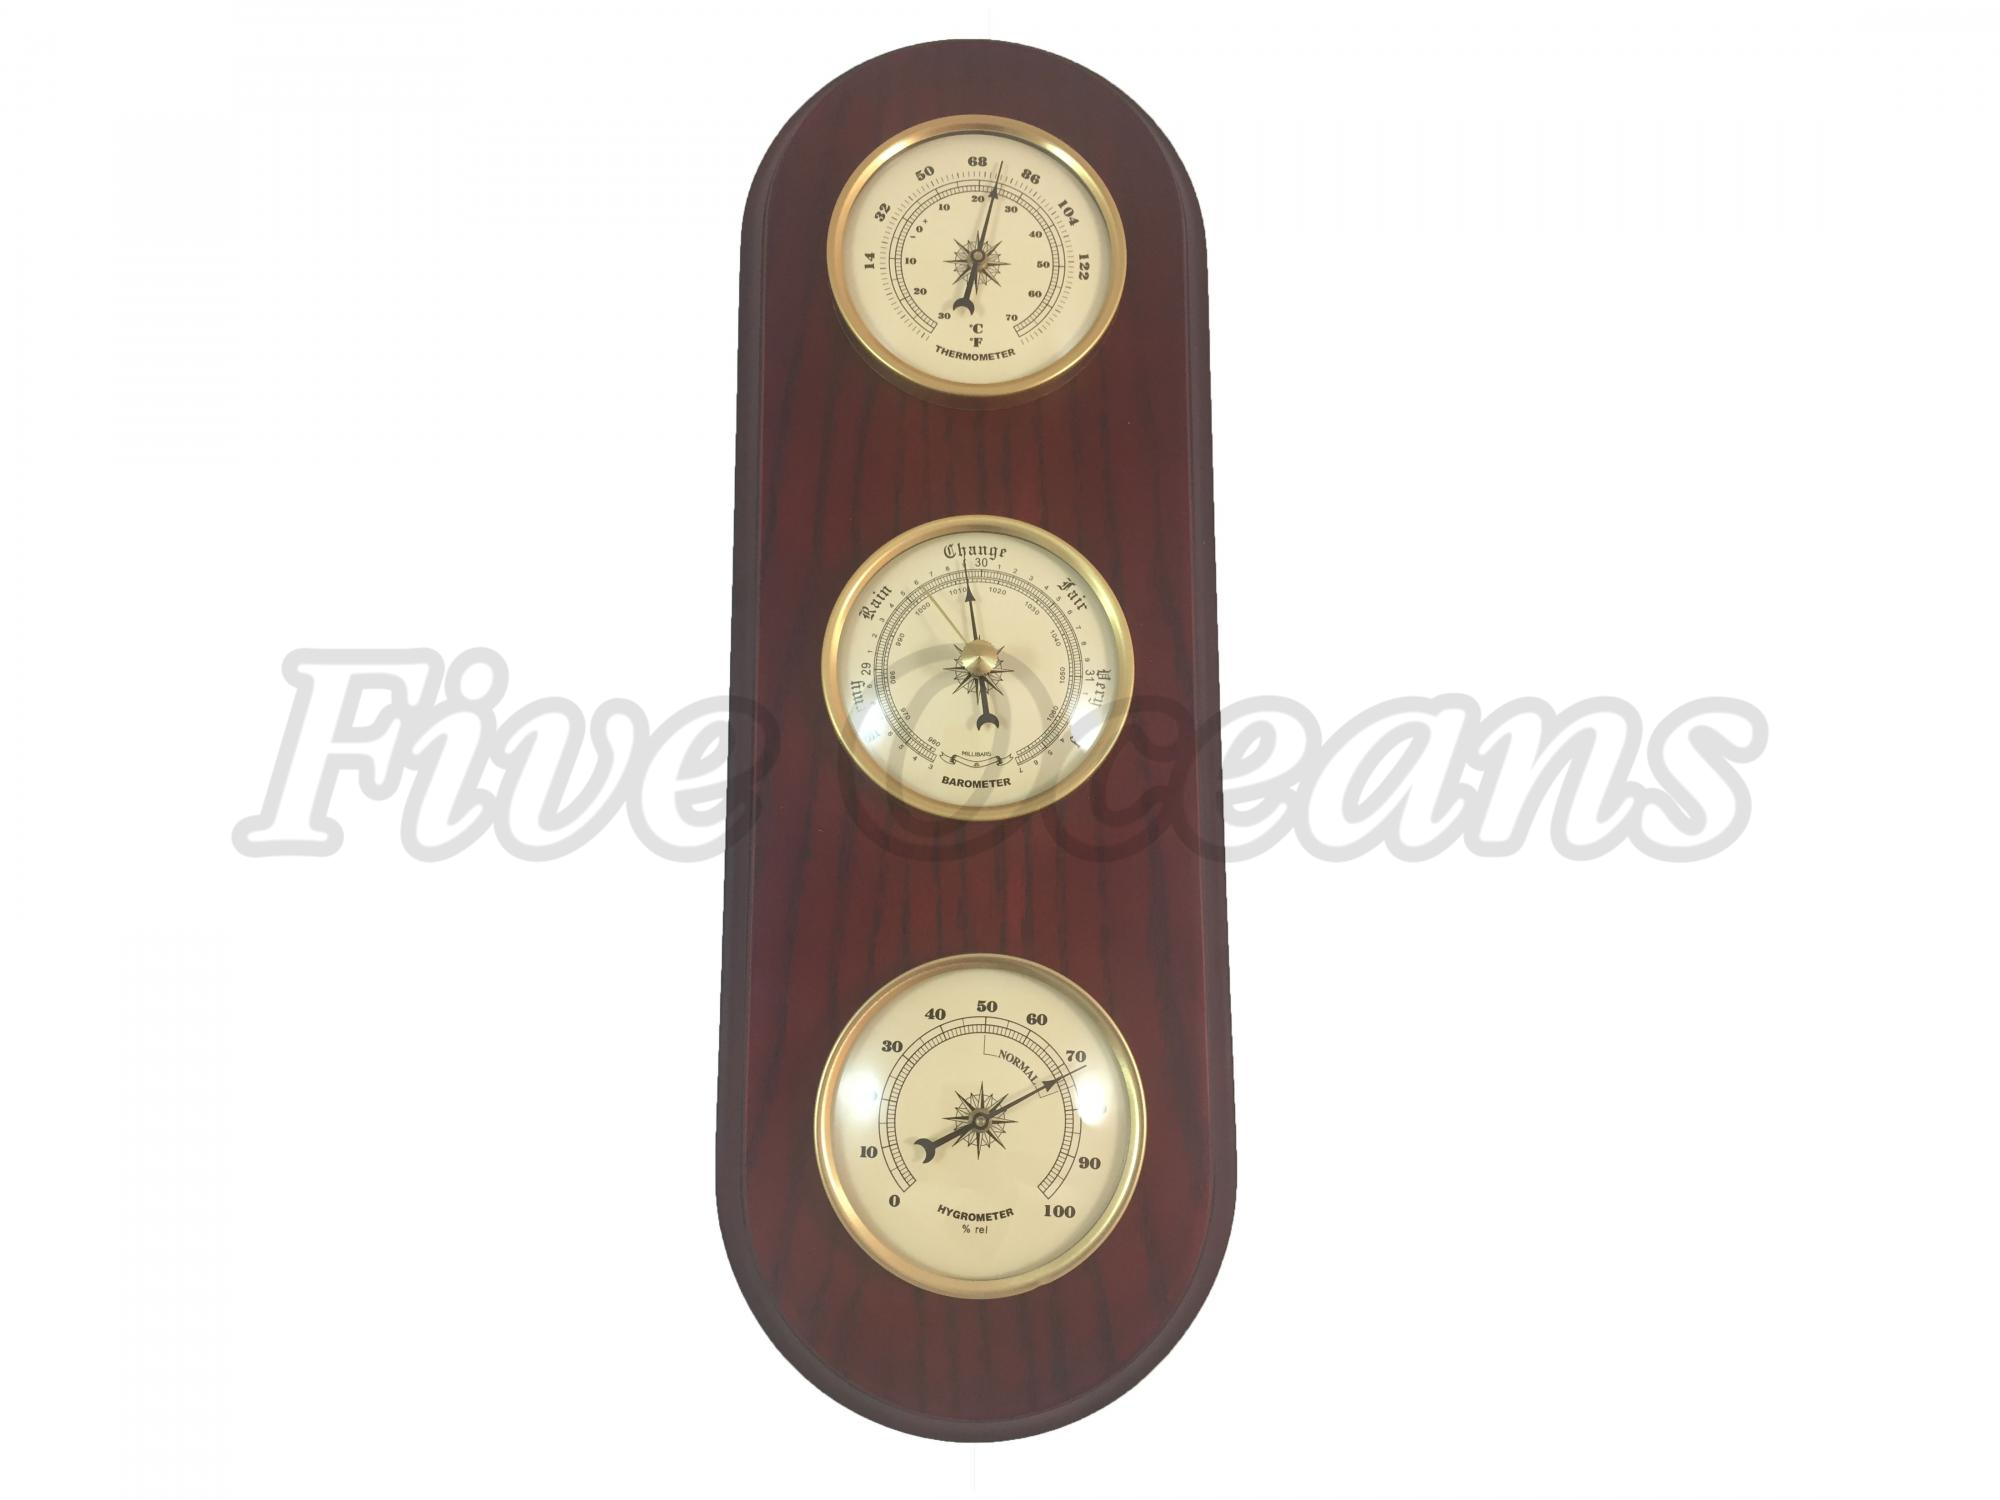 Nautical Porthole Wall Weather Station Instruments includes a Precision Barometer, Thermometer, and a... by